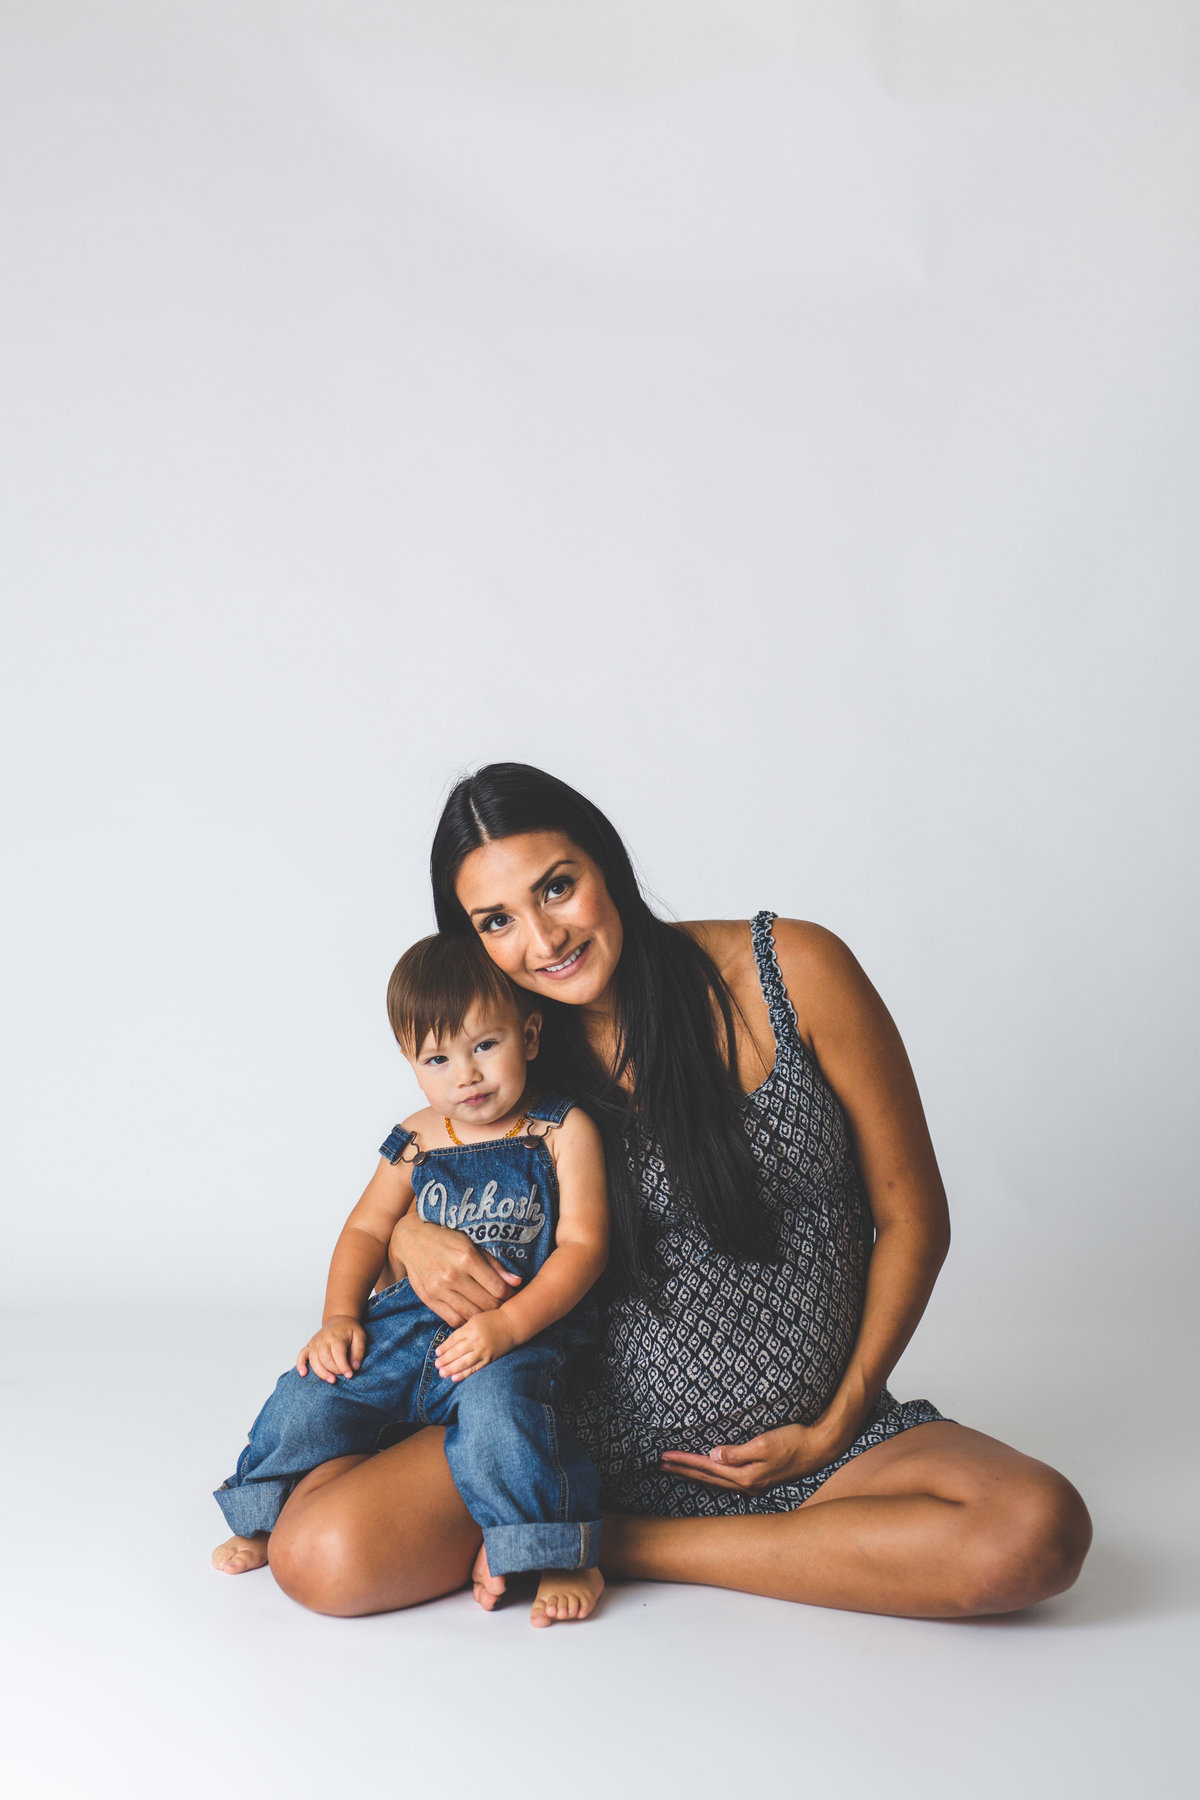 San Antonio In studio family maternity session on a white background with mother holding toddler son.